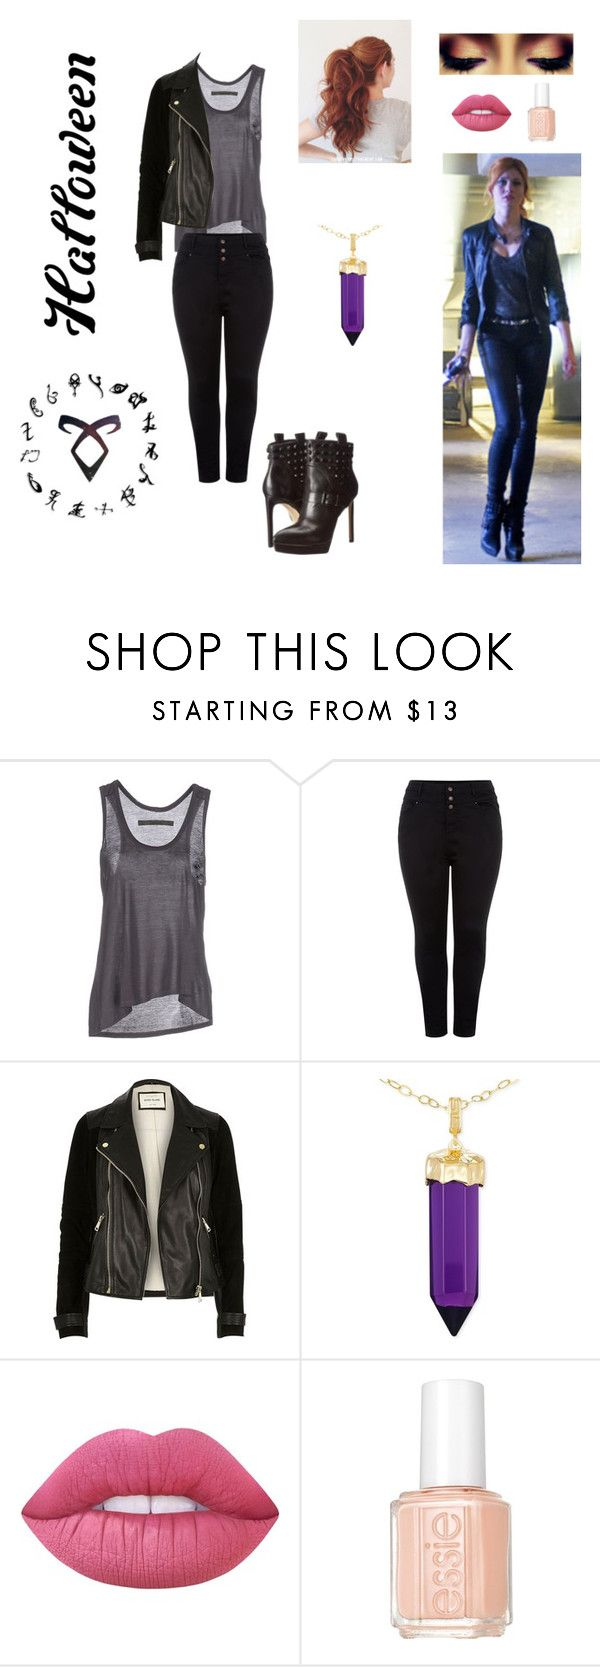 """""""DIY Halloween costume : Being a Shadowhunters like Clary Fray"""" by notamundane ❤ liked on Polyvore featuring Enza Costa, New Look, River Island, Simone I. Smith, Lime Crime and Essie"""